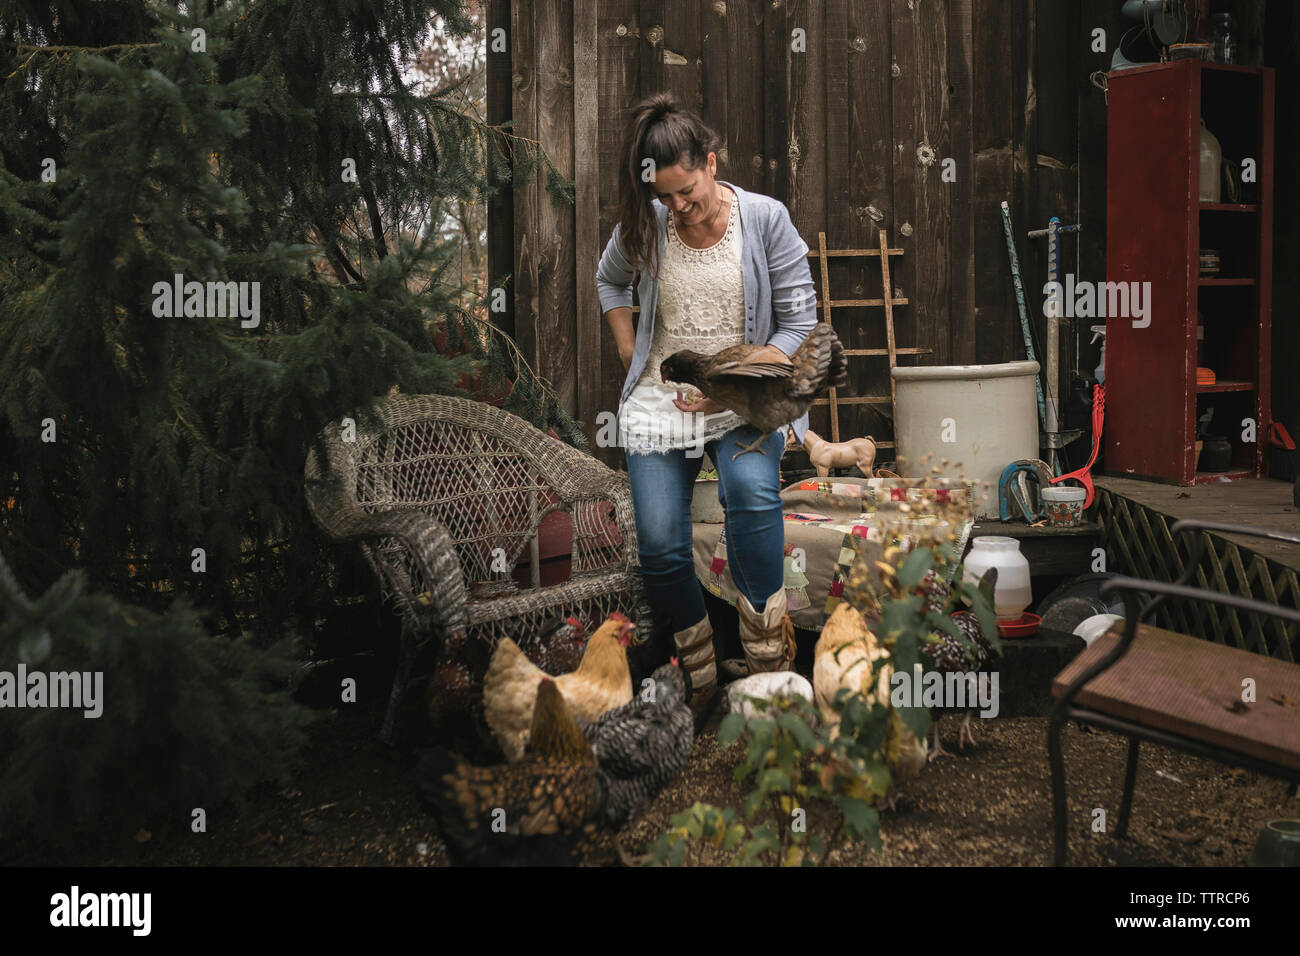 Smiling woman standing by hens in backyard - Stock Image